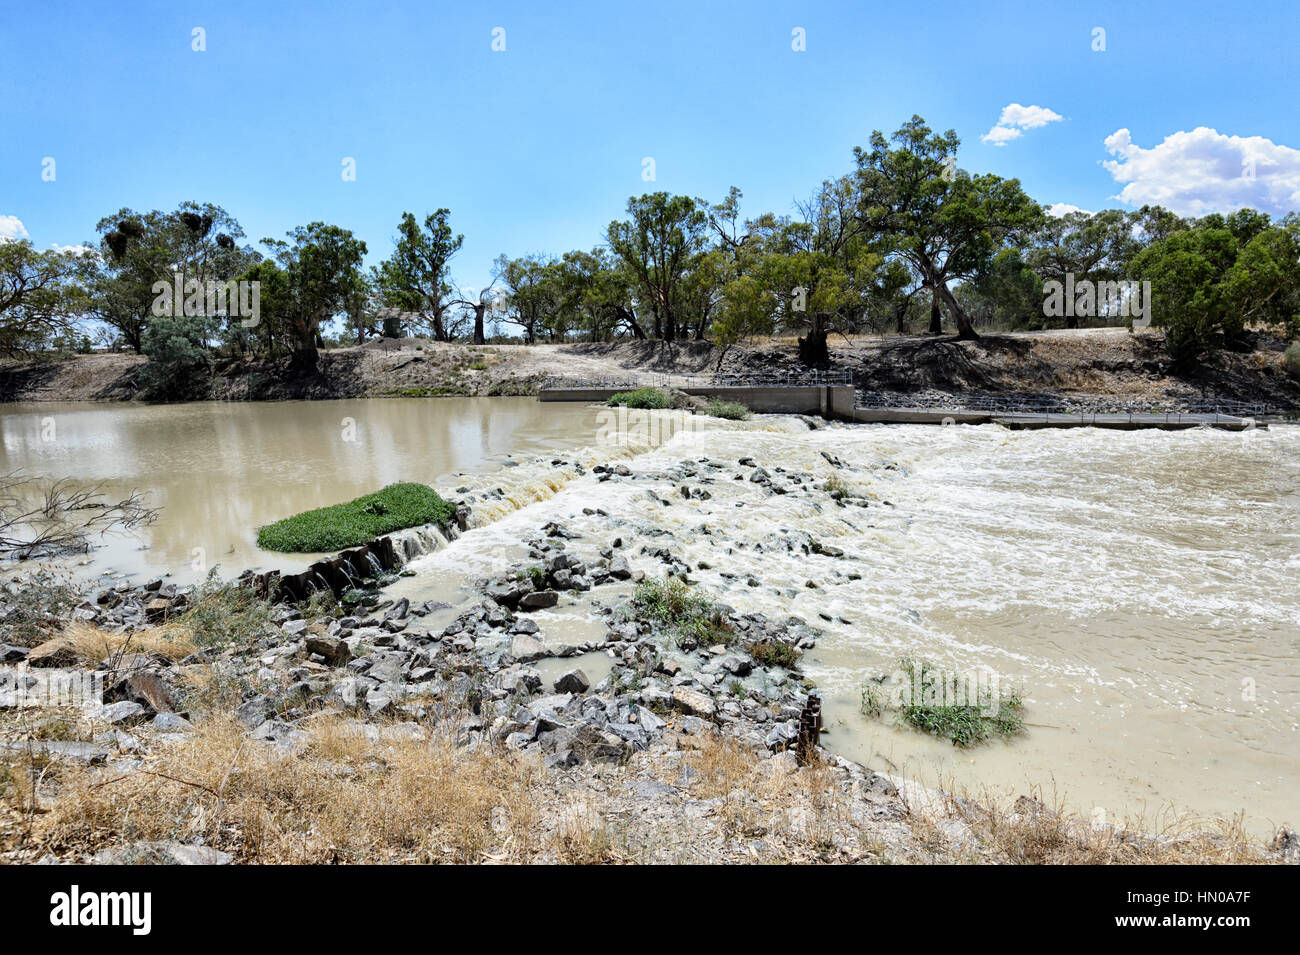 Weir 32 on the Darling River in Kinchega National Park, New South Wales, Australia - Stock Image